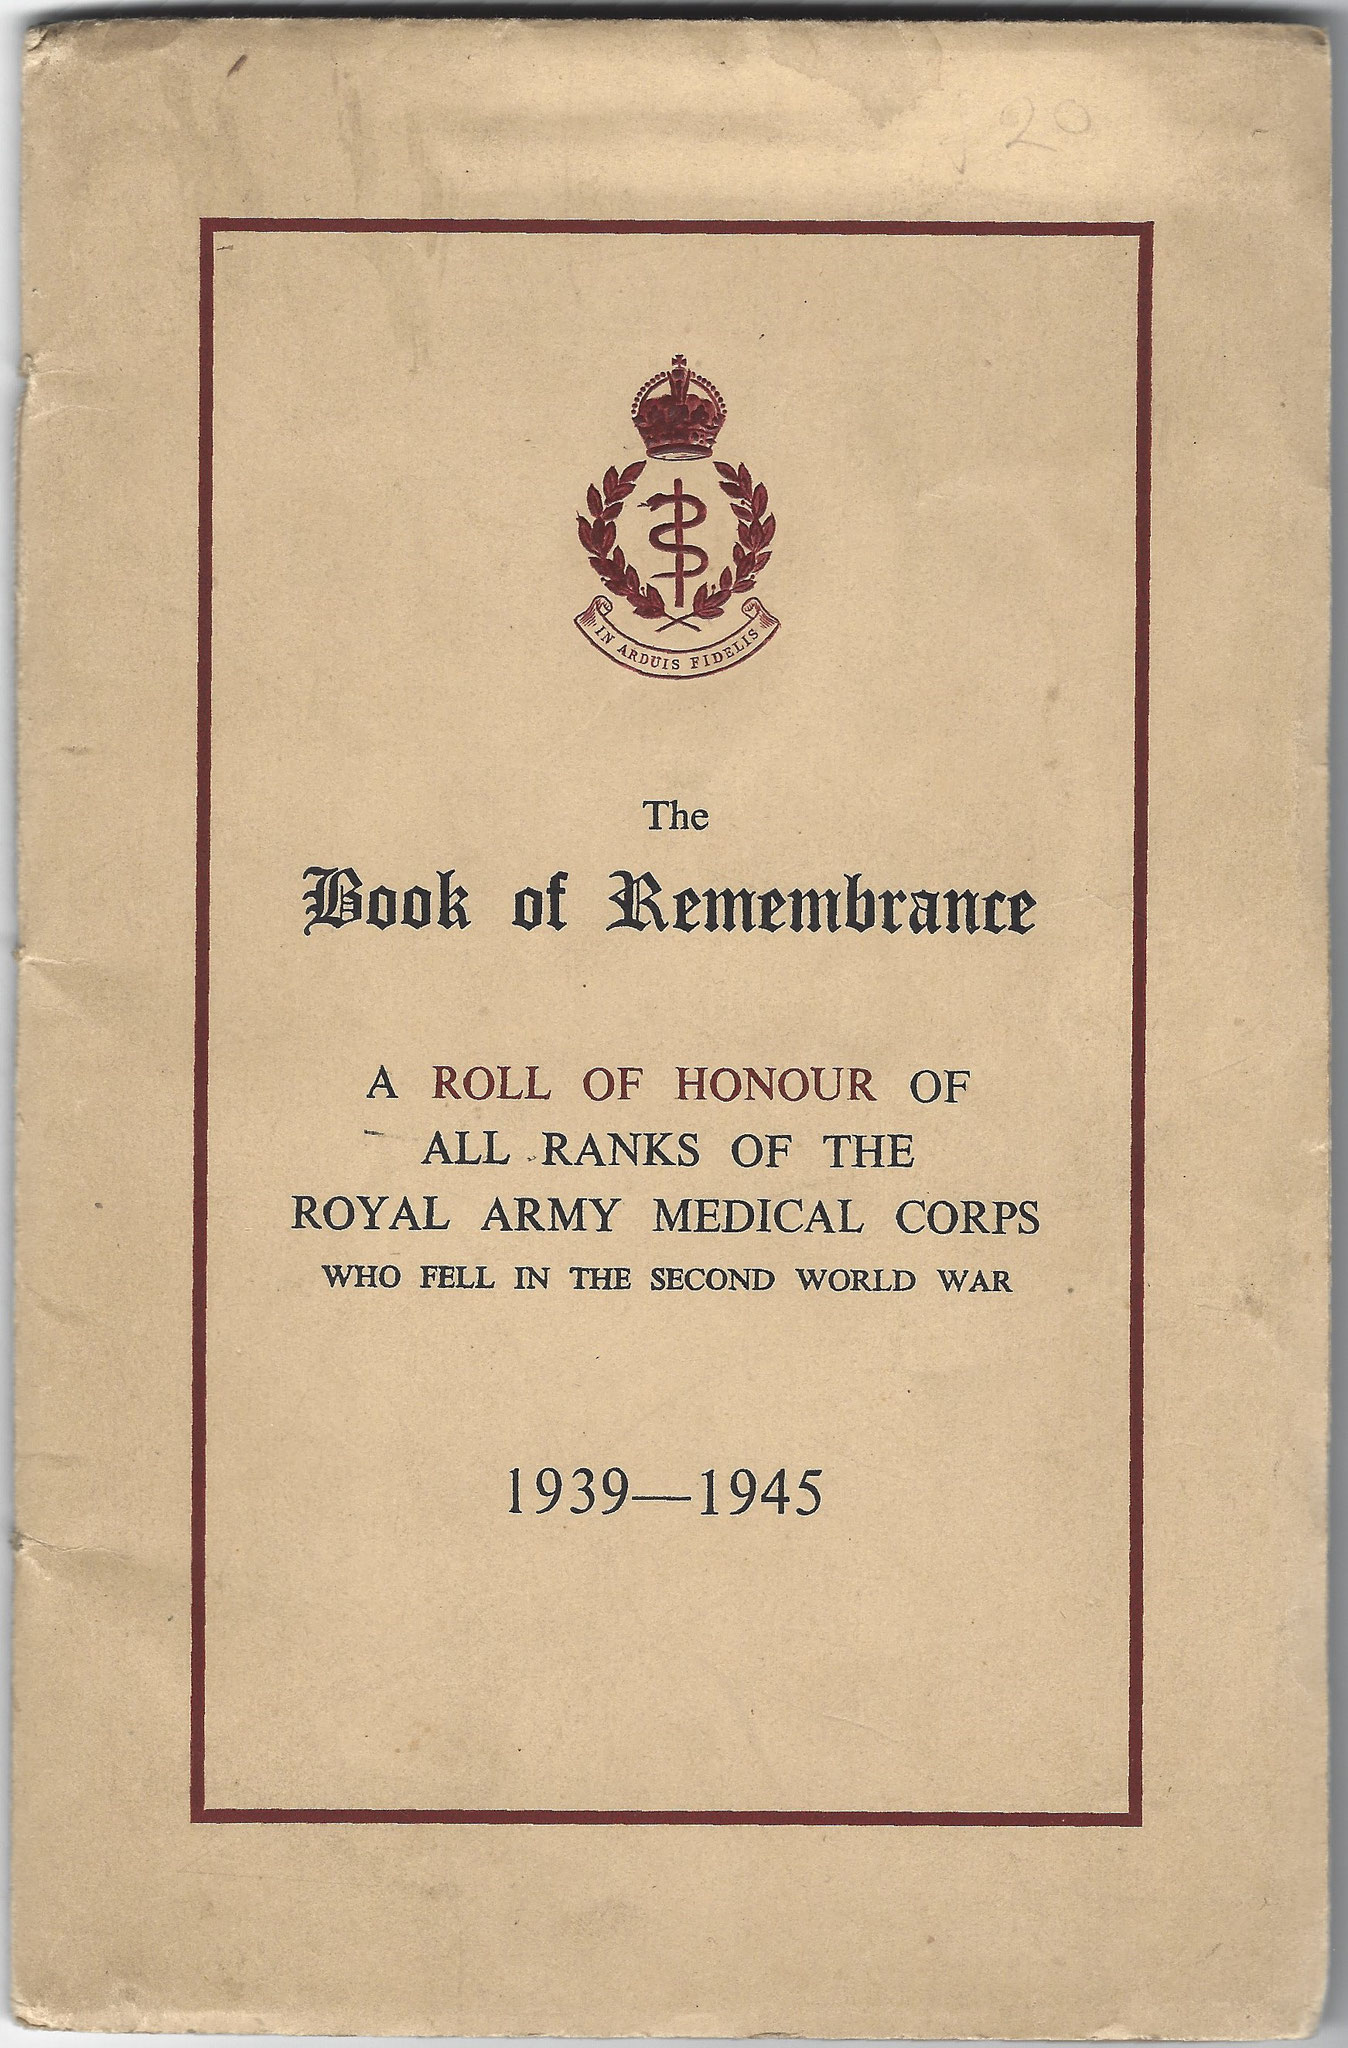 Roll of Honour, Royal Army Medical Corps, 1950 including Arnhem casualties (collection P. Reinders)